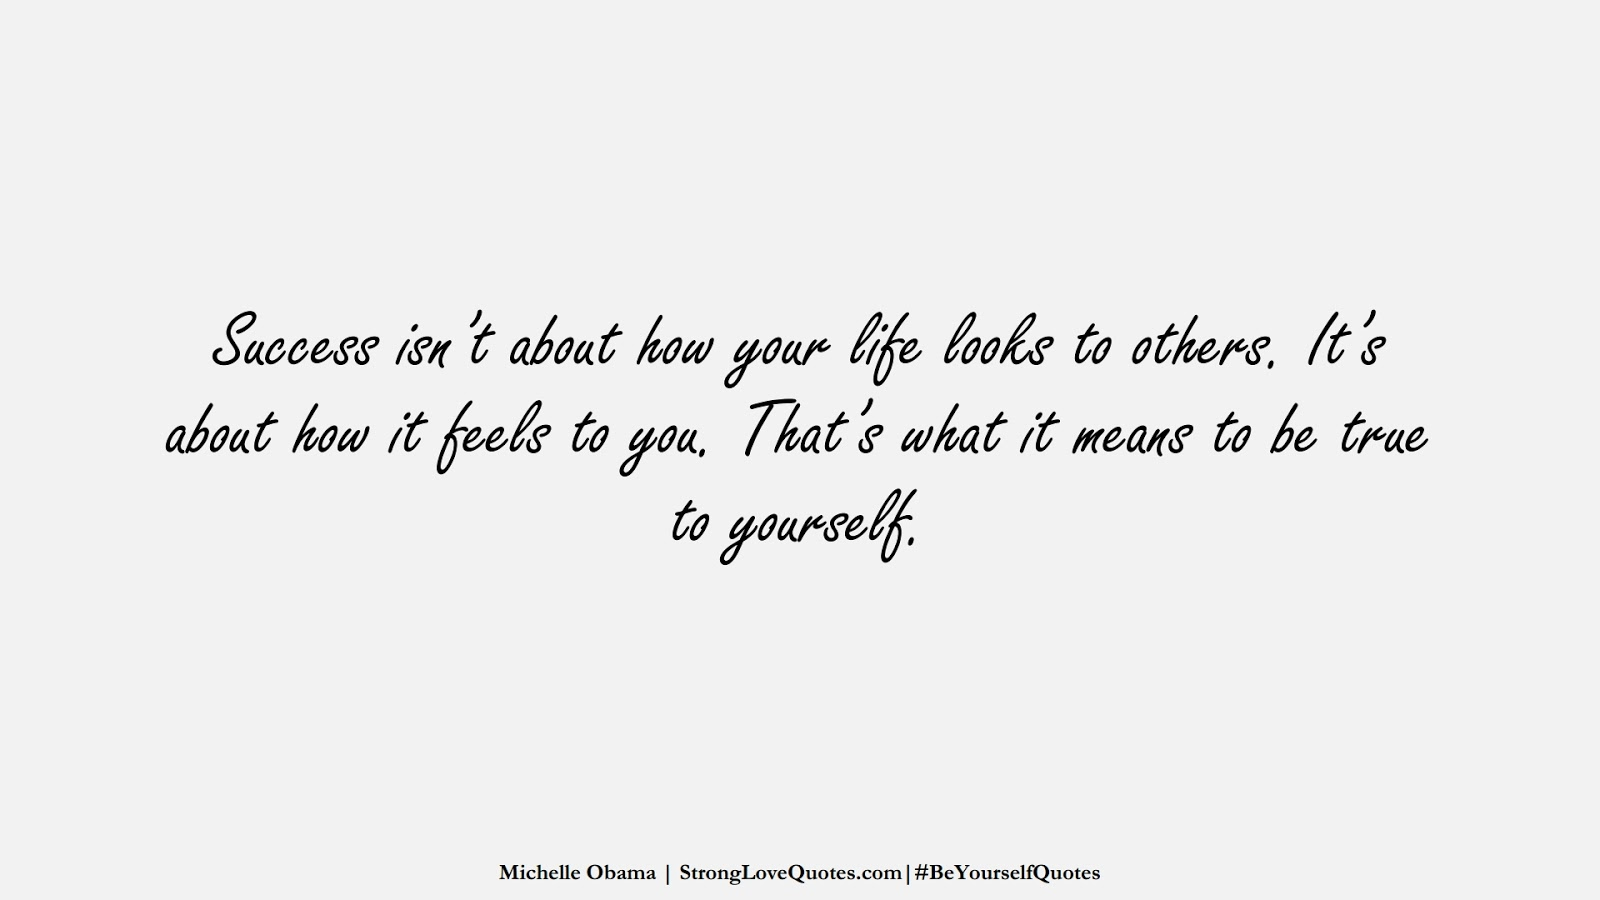 Success isn't about how your life looks to others. It's about how it feels to you. That's what it means to be true to yourself. (Michelle Obama);  #BeYourselfQuotes